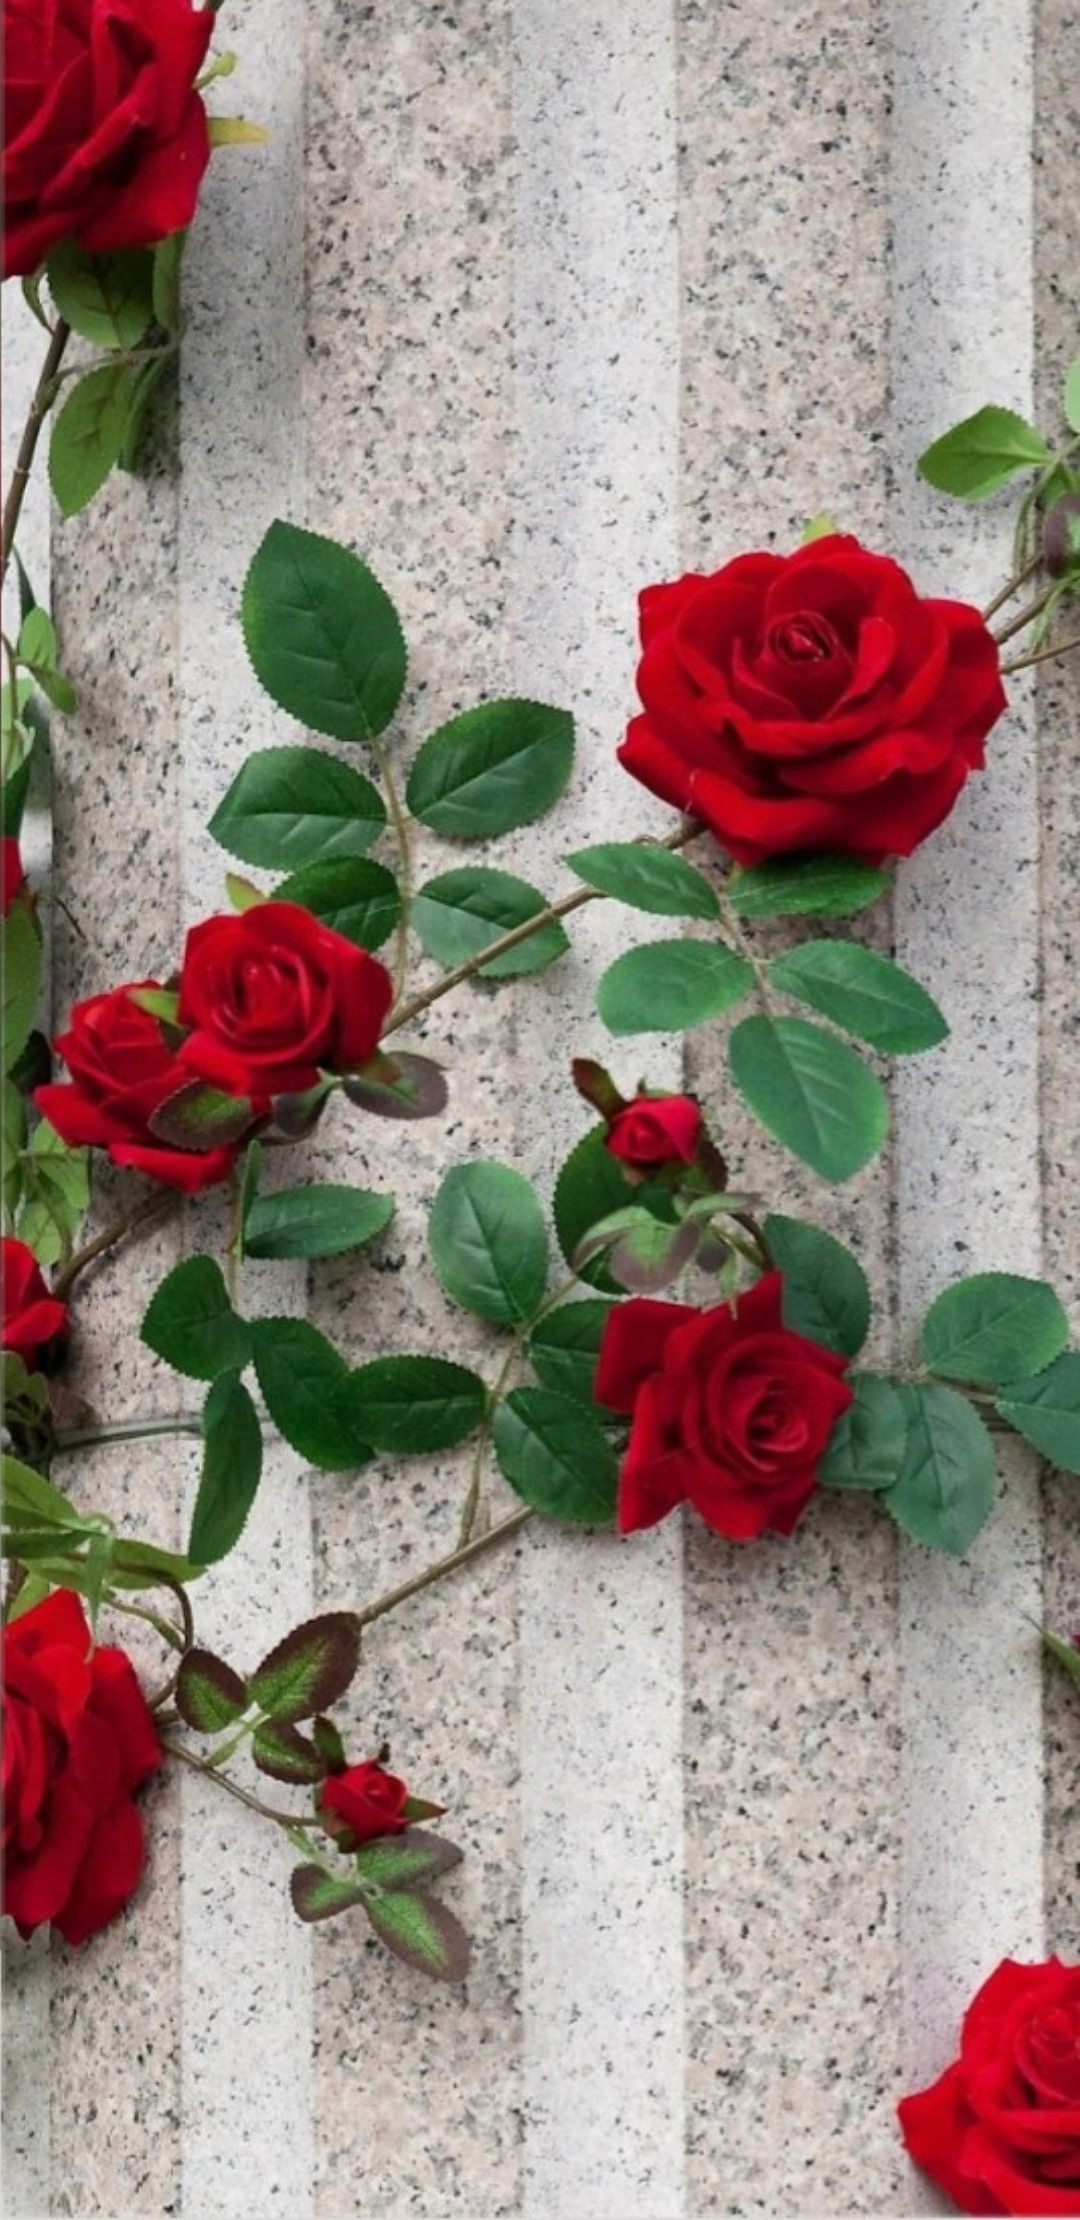 Pin By Shital On Rose Wallpaper Flower Wallpaper Rose Wallpaper Love Wallpaper